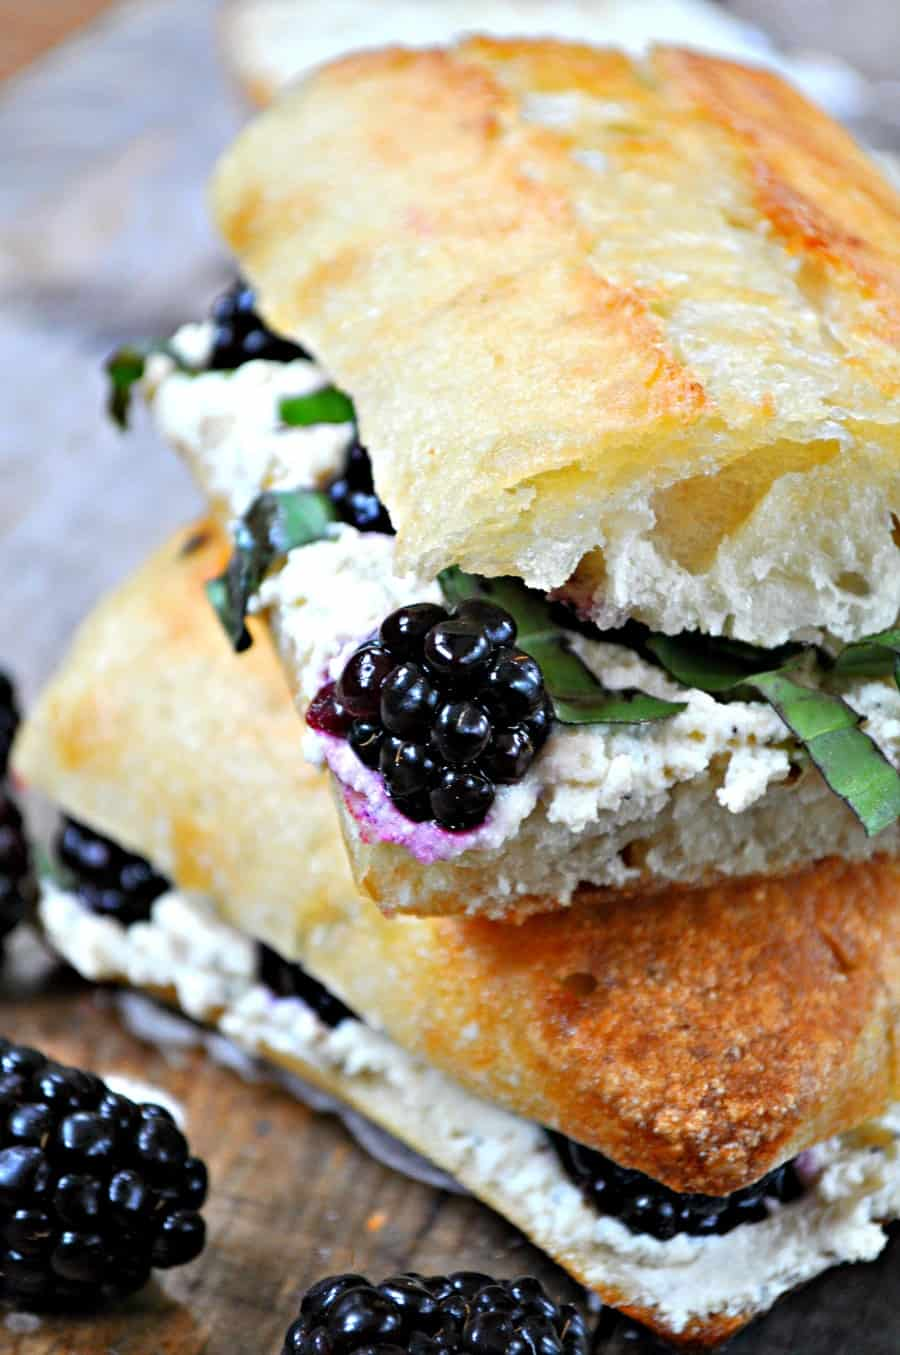 Vegan Blackberry, Basil and Ricotta Pressed Sandwich